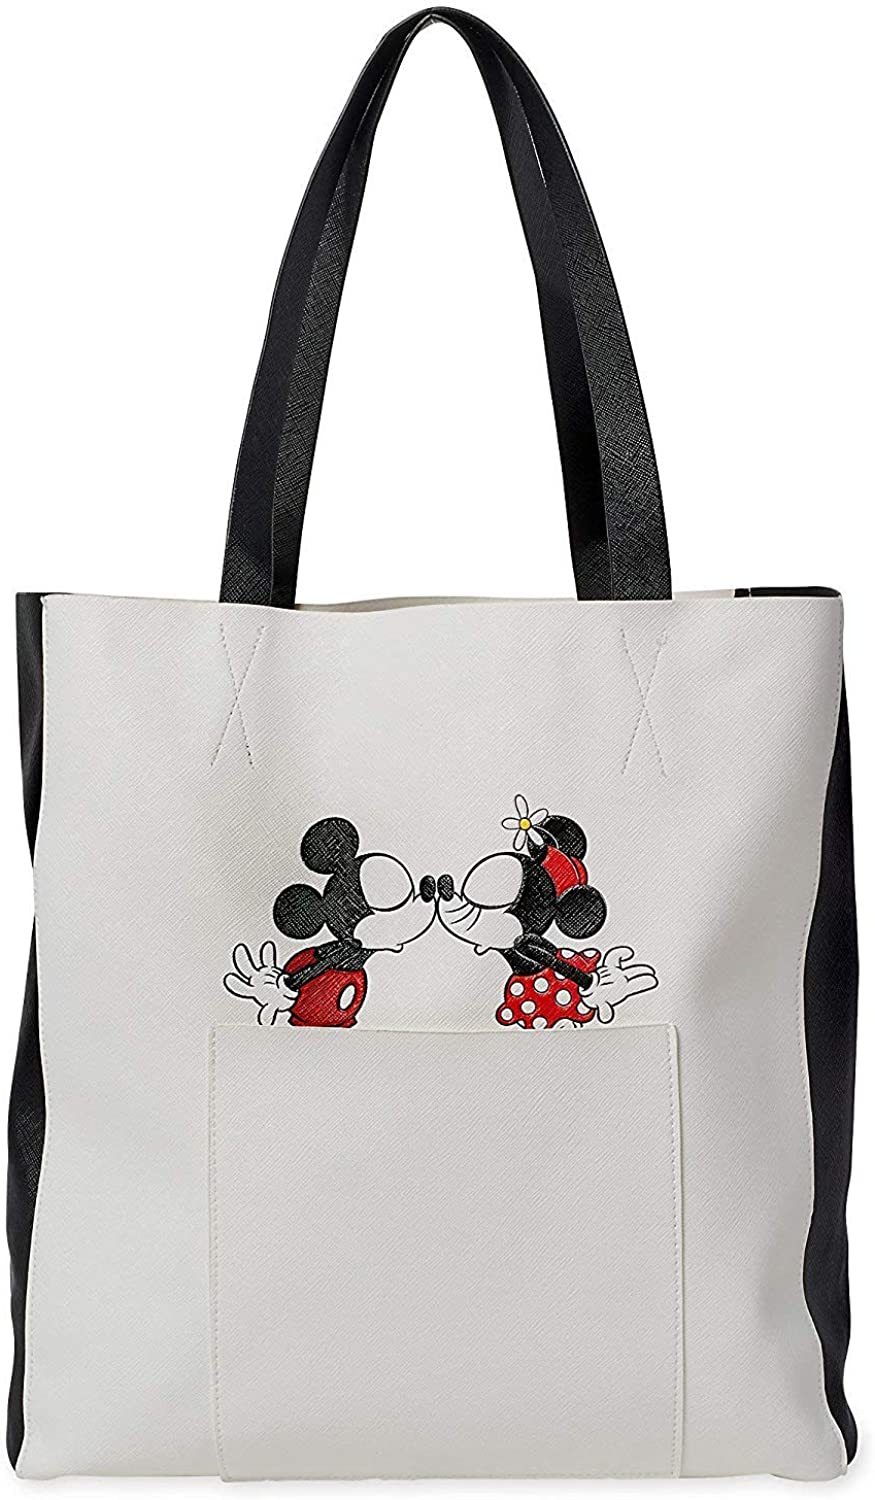 Disney Mickey and Minnie Mouse Faux Leather Tote Bag for Adults White.